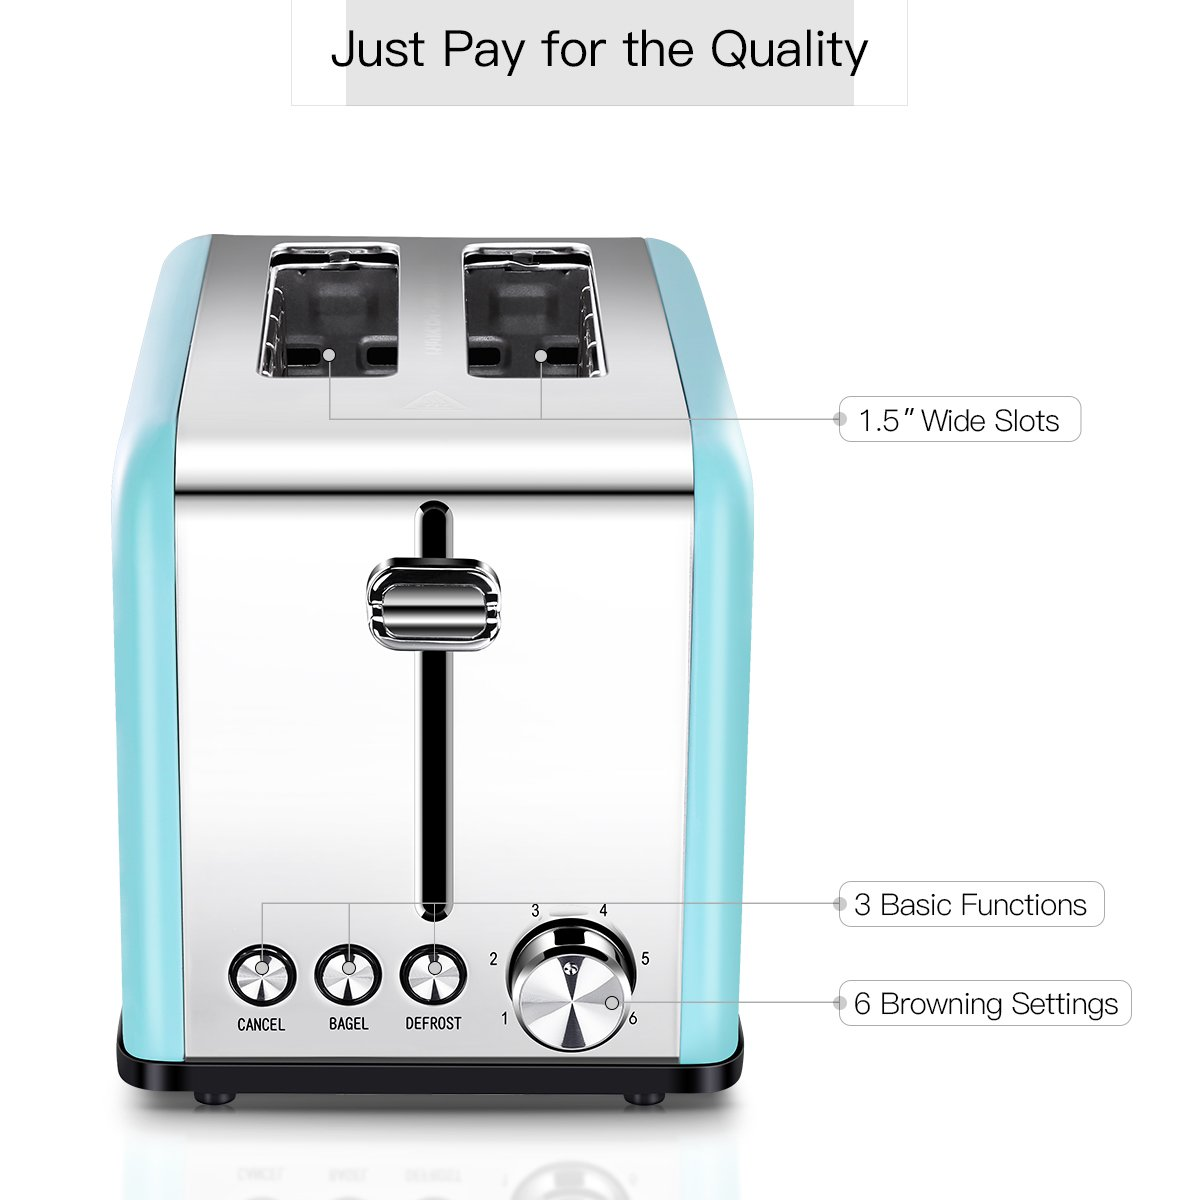 Toaster 2 Slice, Retro Small Toaster with Bagel, Cancel, Defrost Function, Extra Wide Slot Compact Stainless Steel Toasters for Bread Waffles, Blue by Keemo (Image #4)